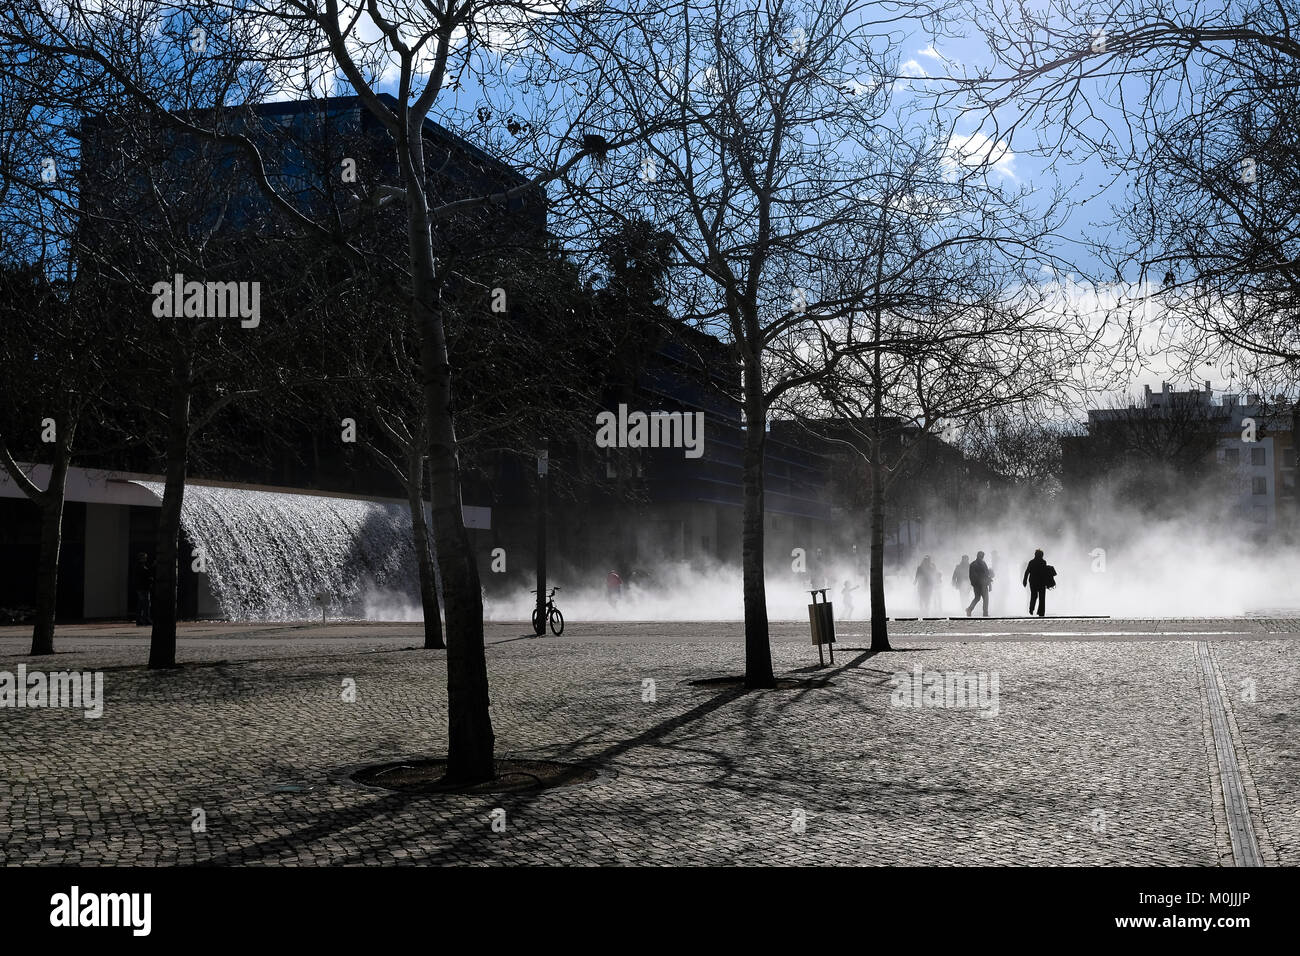 people walk trough a vapor fountain placed in one of the many public parks of Lisbon - Stock Image